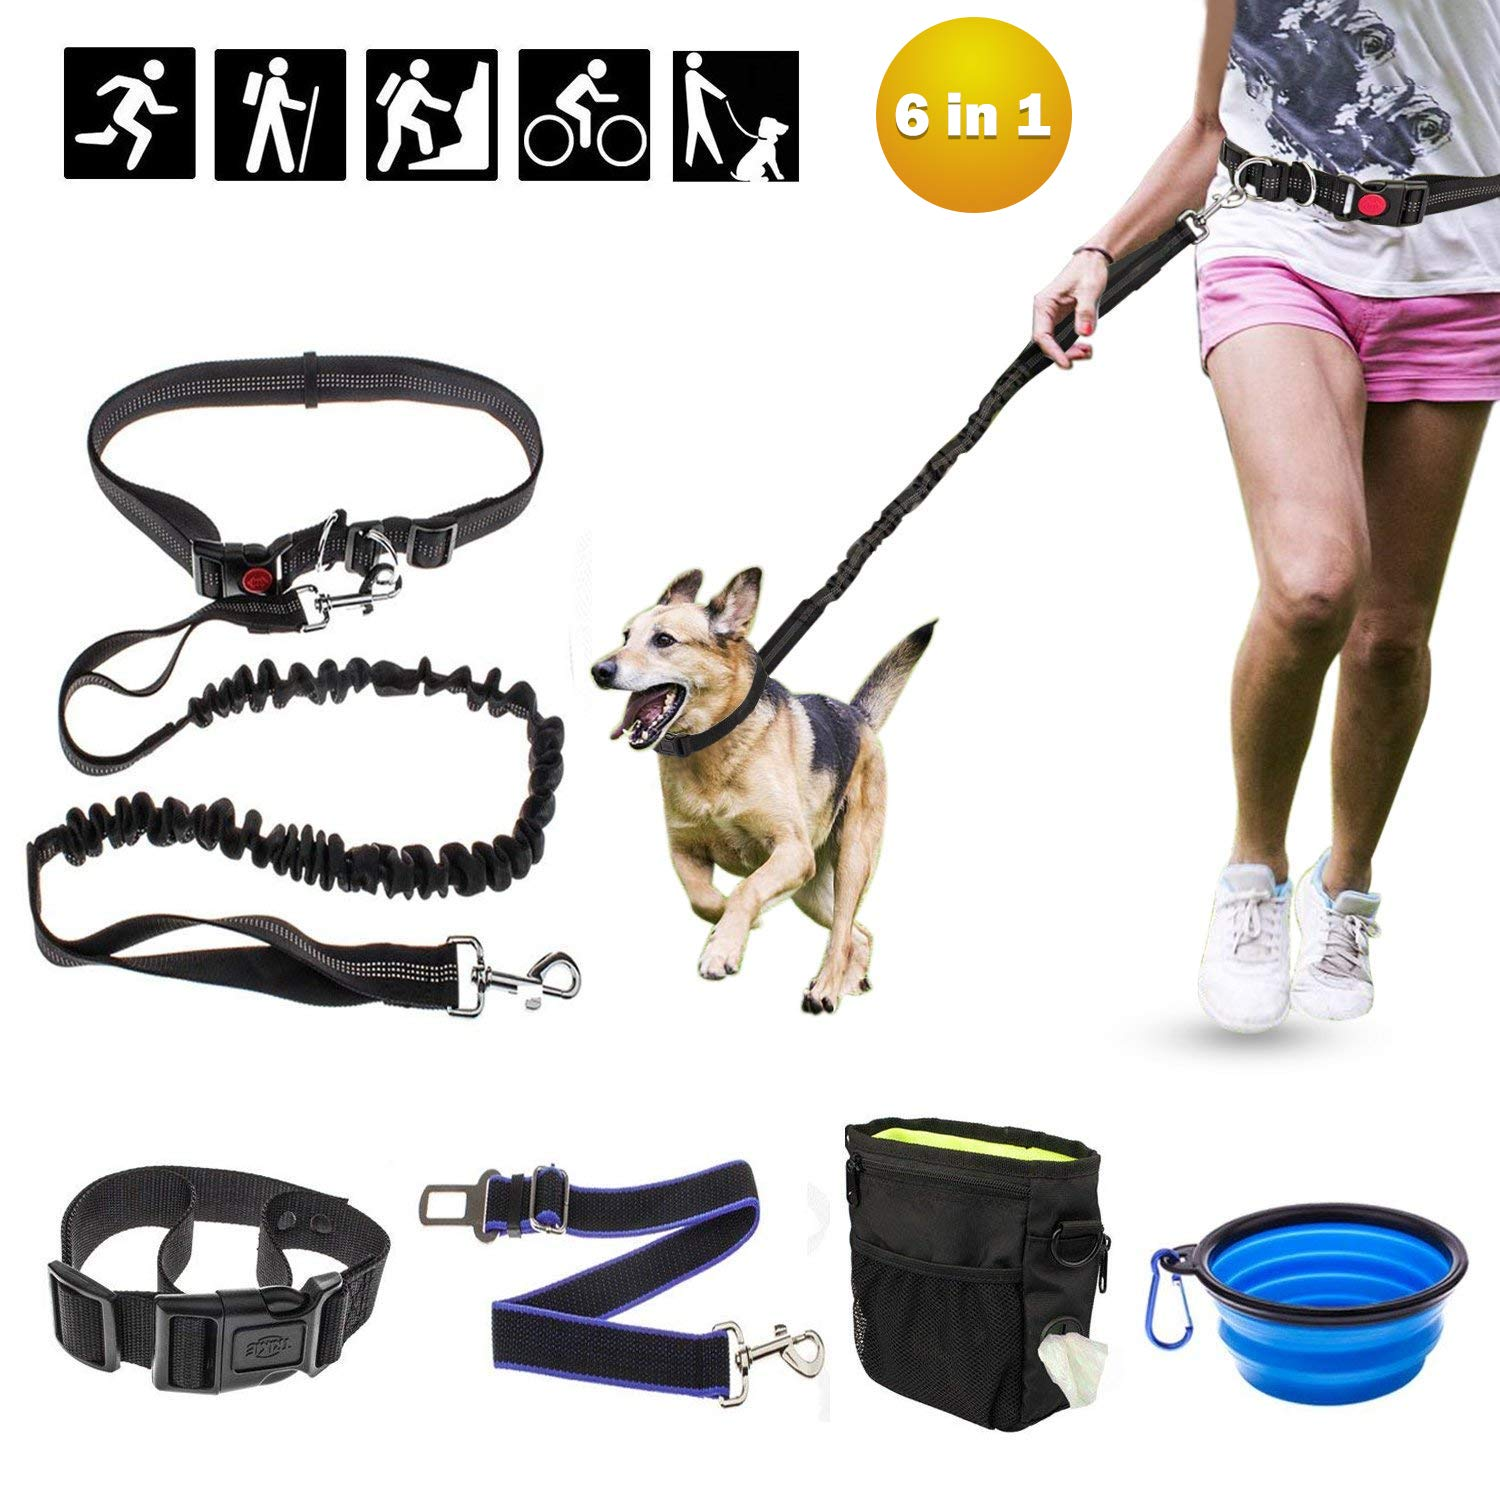 Ocathnon Hands Free Dog Leash Bungee Buffer 2 Padded Handles with Waistband, Dog Collar, Dog Seatbelt, Collapsible Dog Bowl, Training Treats Pouch with Bag Dispenser for Running, Walking, Hiking by Ocathnon